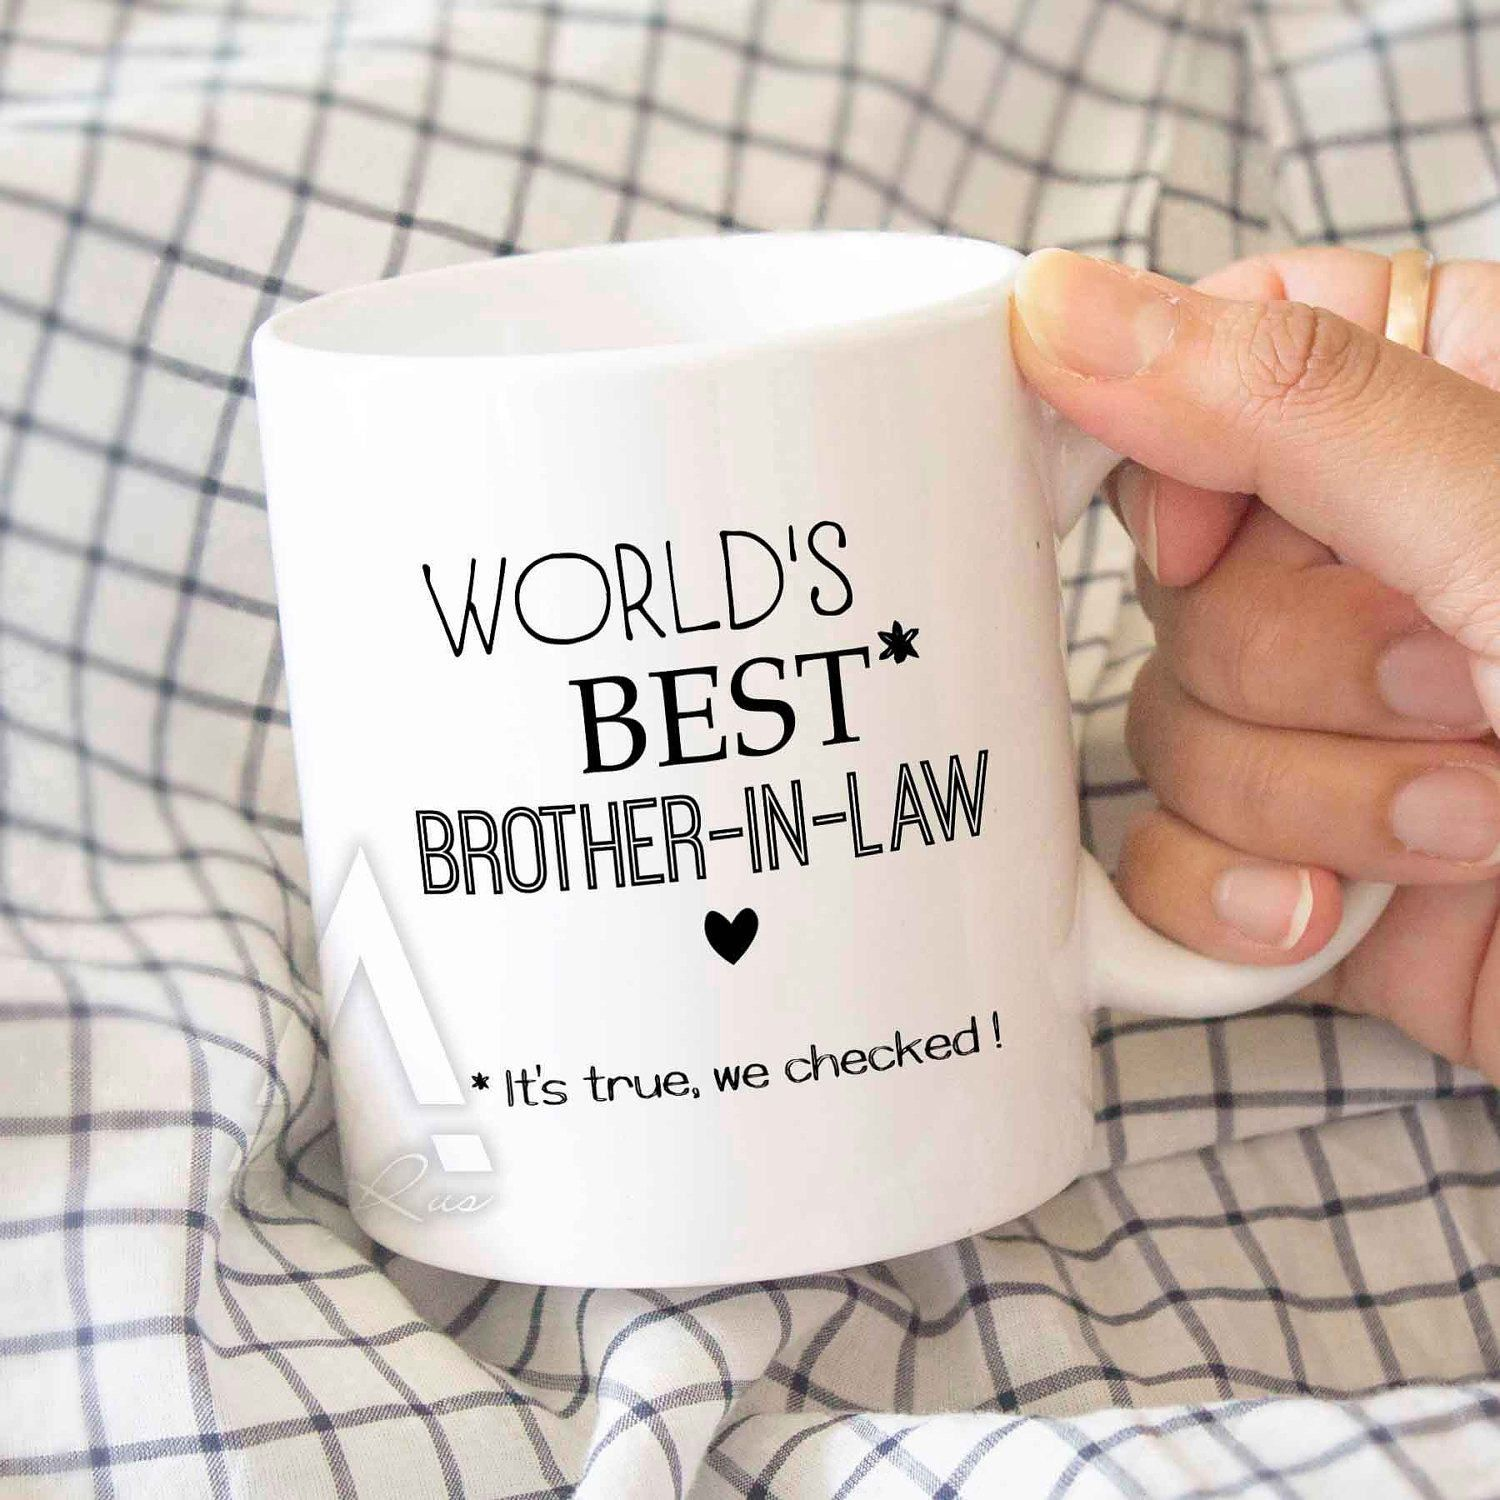 Gifts For Brother In Law Laws Worlds Best Lawcoffee Mug Birthday Gift Mugwedding MU509 By ArtRuss On